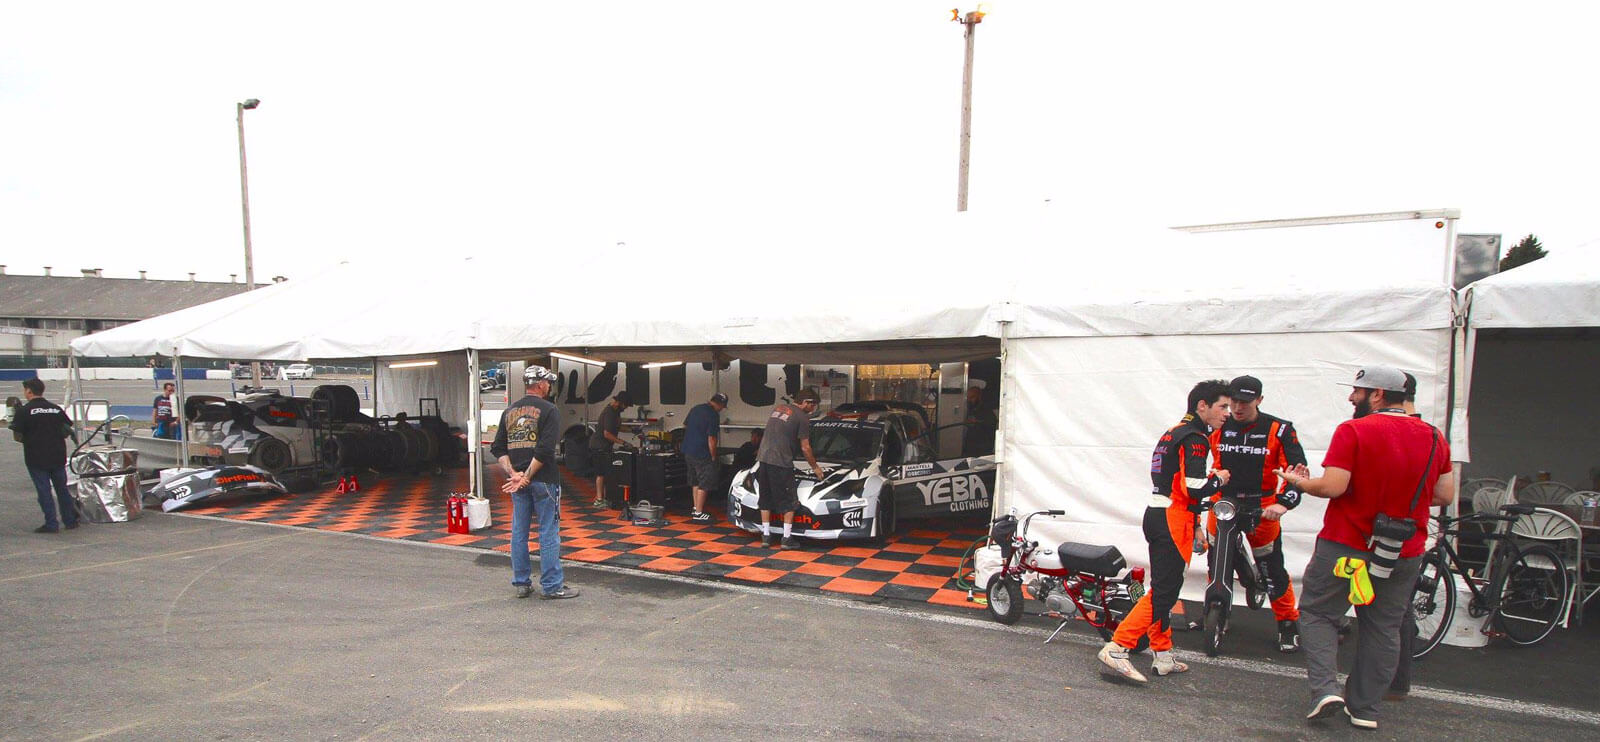 A portable outdoor setup at the Red Bull Global Rallycross event